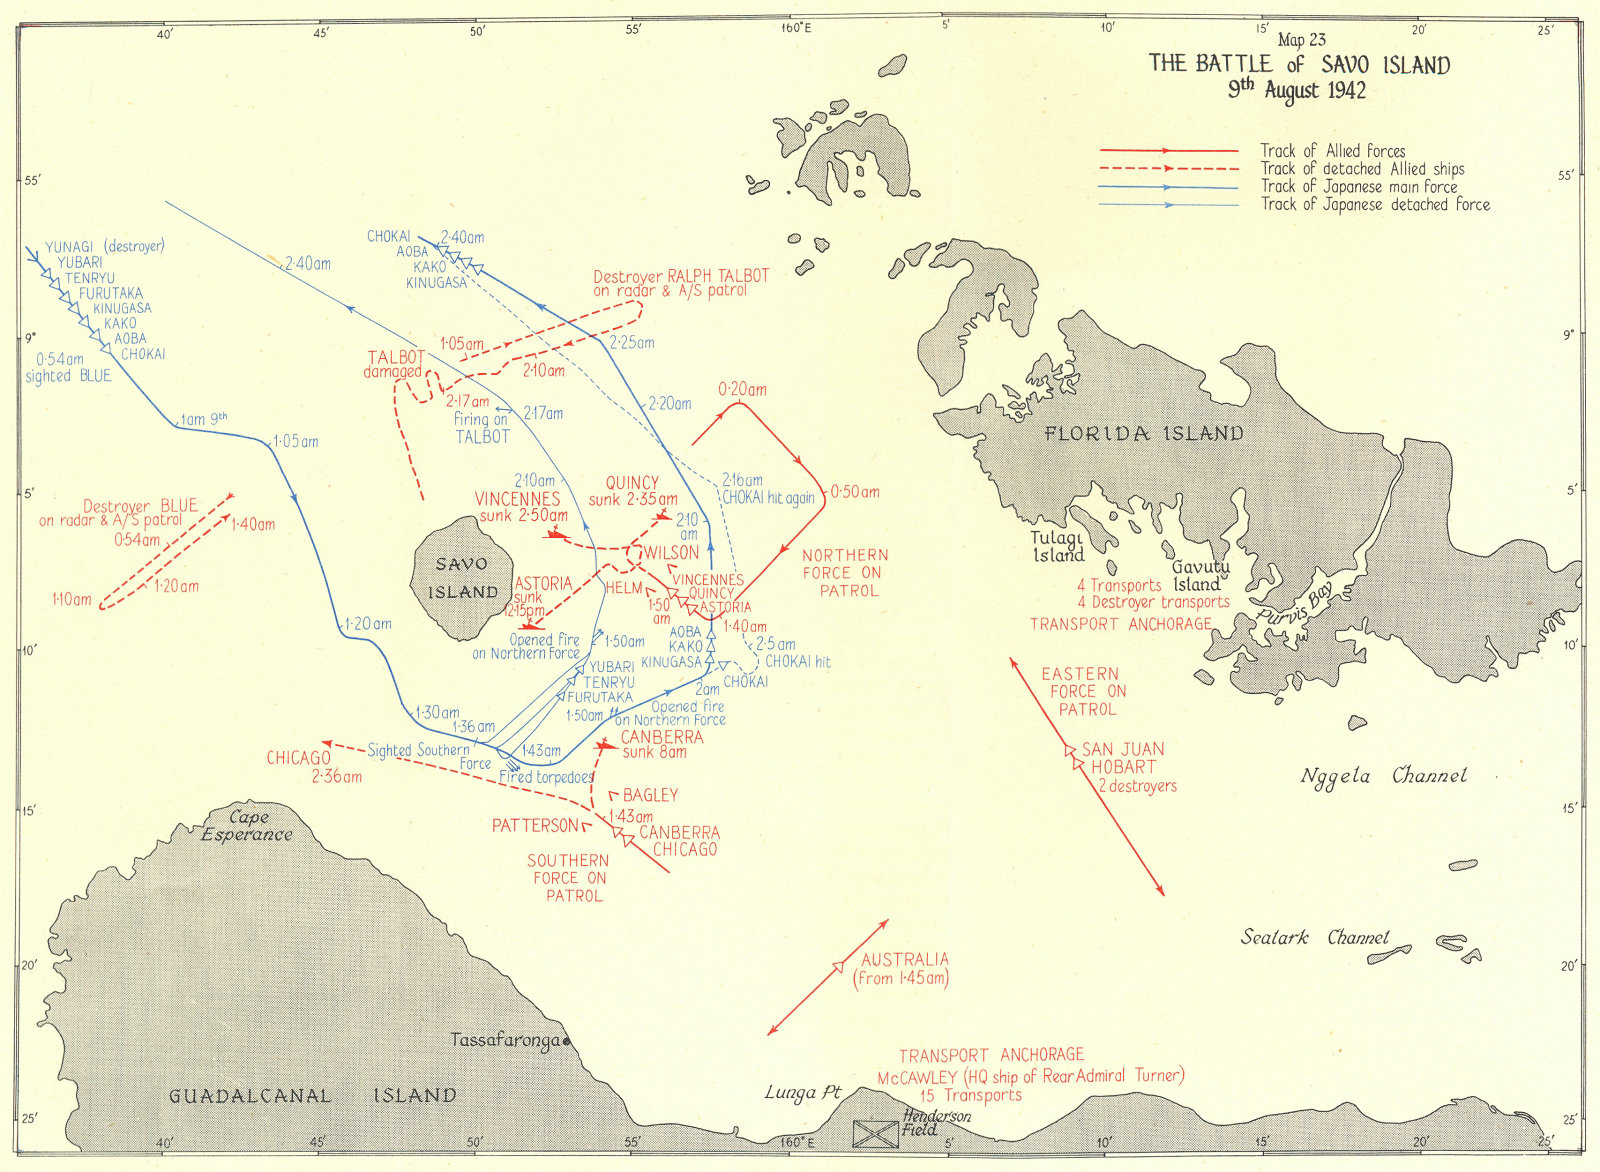 Map depicting the Battle of Savo Island